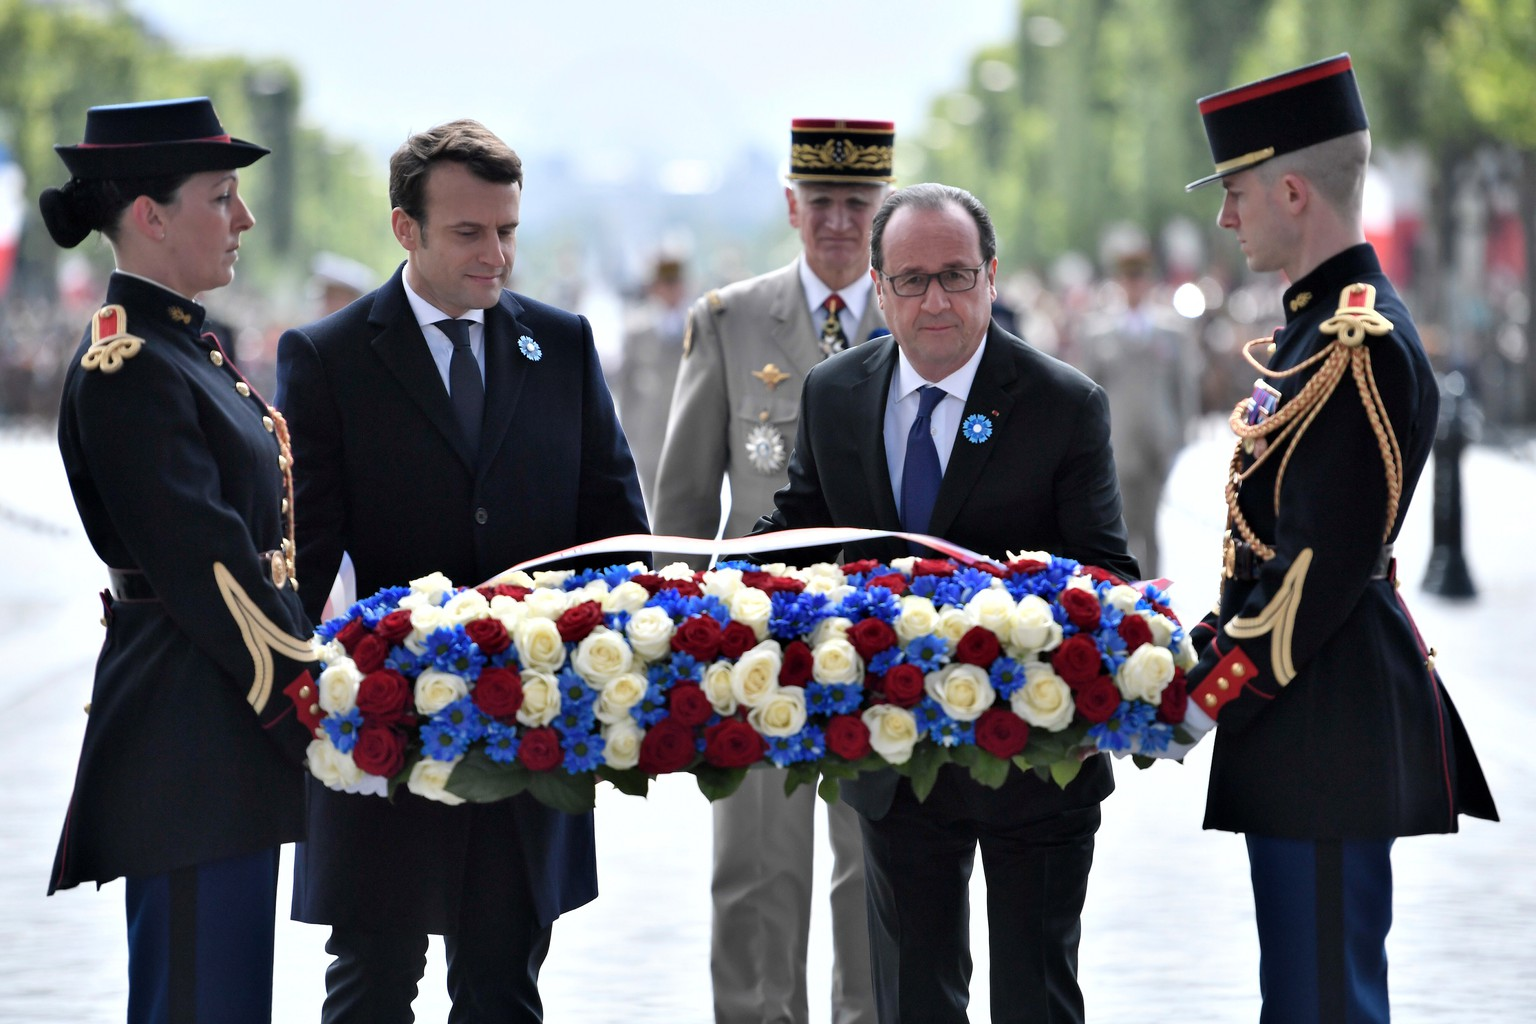 French President-elect Emmanuel Macron, second left, and outgoing President Francois Hollande lay a wreath of flowers at the tomb of the Unknown Soldier during a ceremony to mark the end of World War II at the Arc de Triomphe in Paris, Monday, May 8, 2017. Macron defeated far-right leader Marine Le Pen handily in Sunday's presidential vote, and now must pull together a majority for his year-old political movement by mid-June legislative elections. (Stephane de Sakutin, Pool via AP)